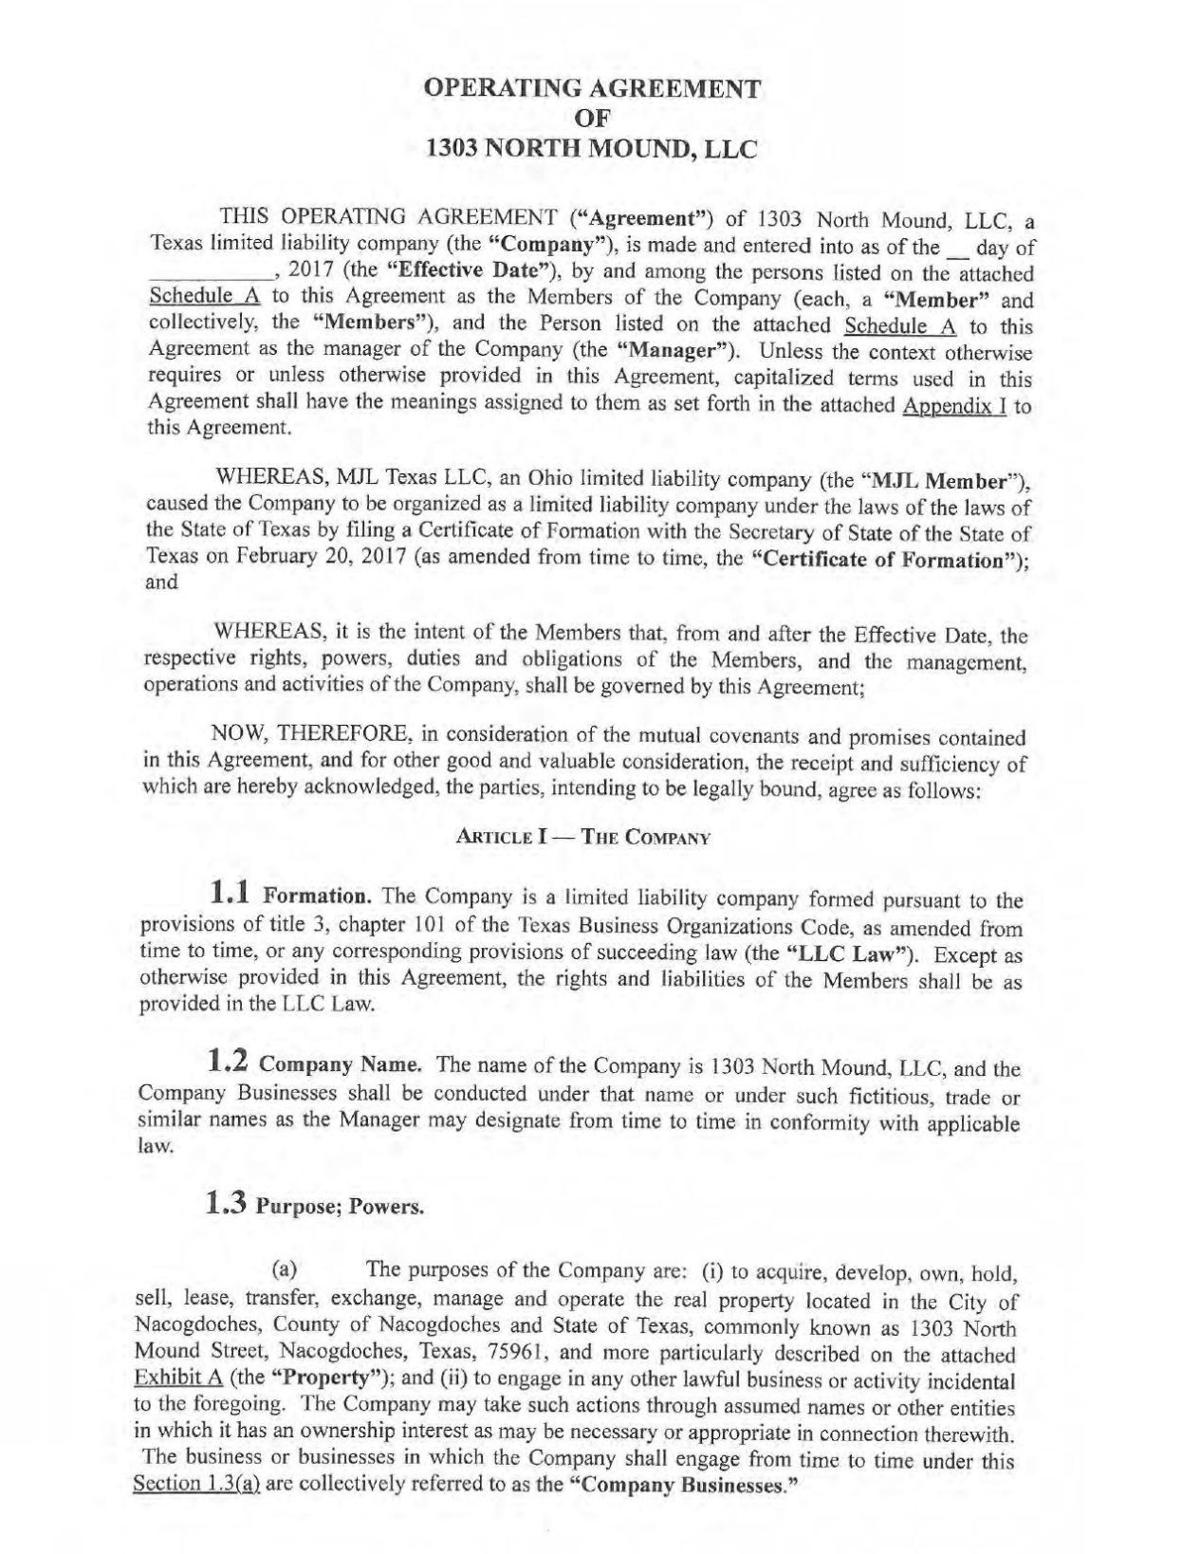 1303 North Mound Llc Operating Agreement Fully Ex Pdf